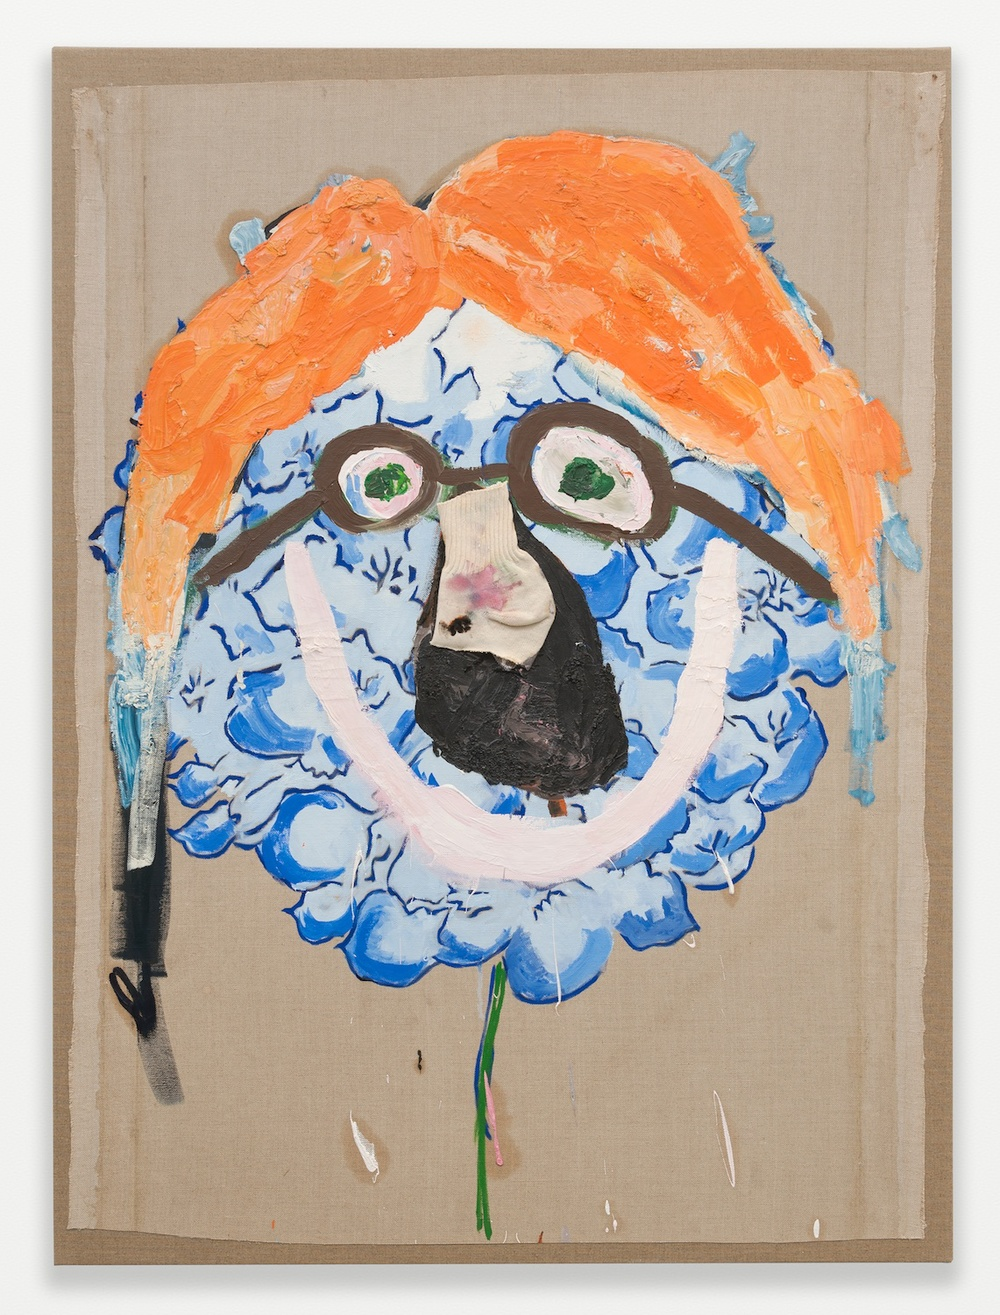 "Mark Grotjahn Untitled (TBC Flower Face 435) 2000 Oil and sock on linen, mounted on linen 50"" x 37"" MG435"